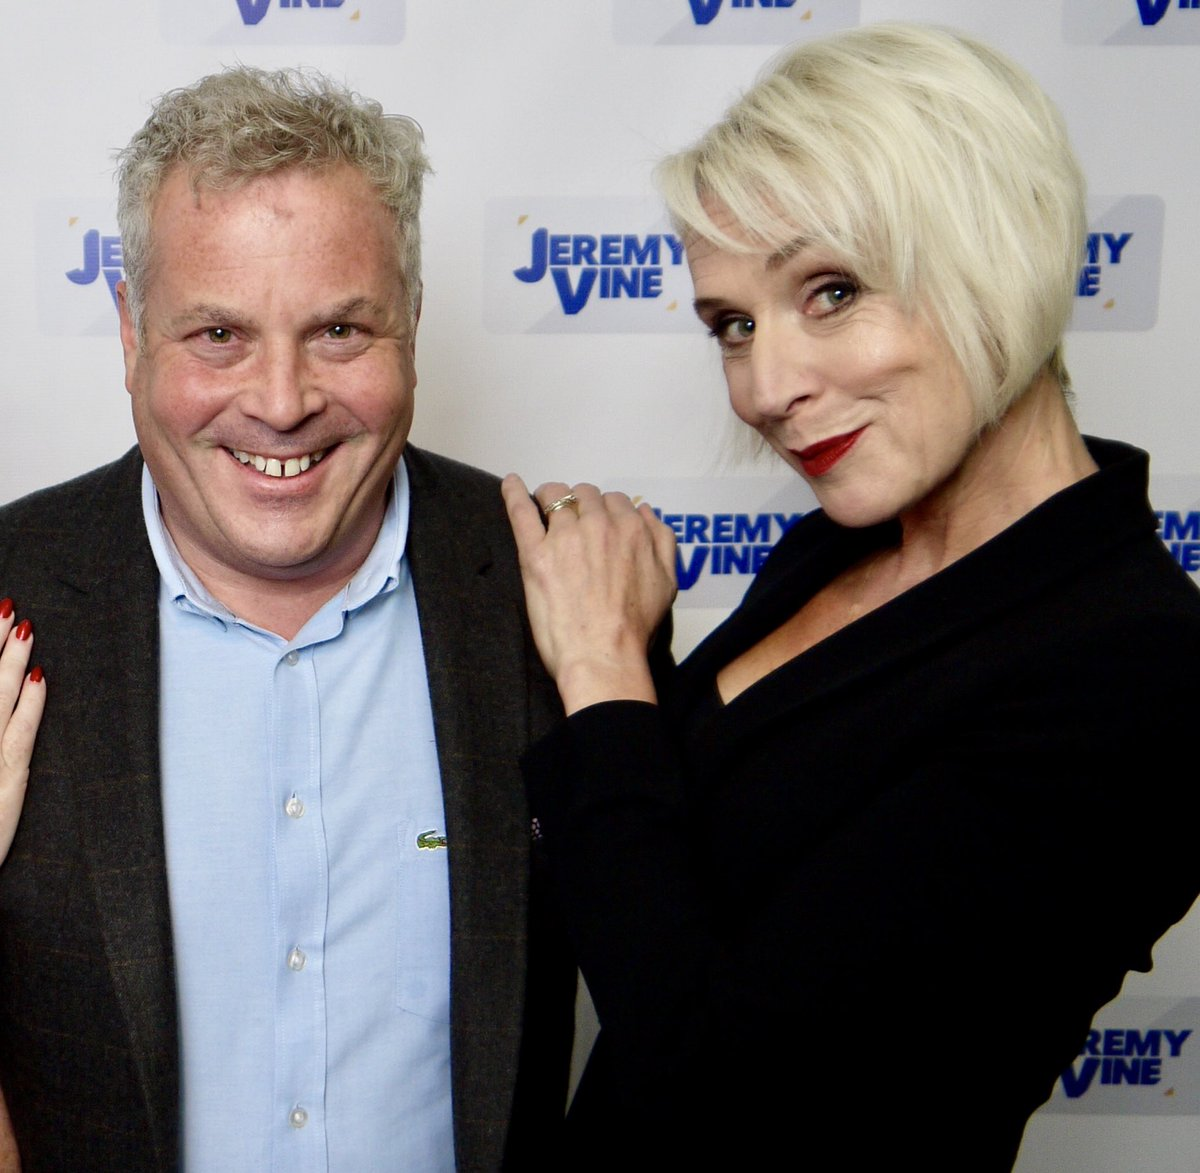 Wishing @theJeremyVine luck this morning as he's got to deal with this one on @JeremyVineOn5 today. Thoughts & prayers etc 😂@thejamesmax